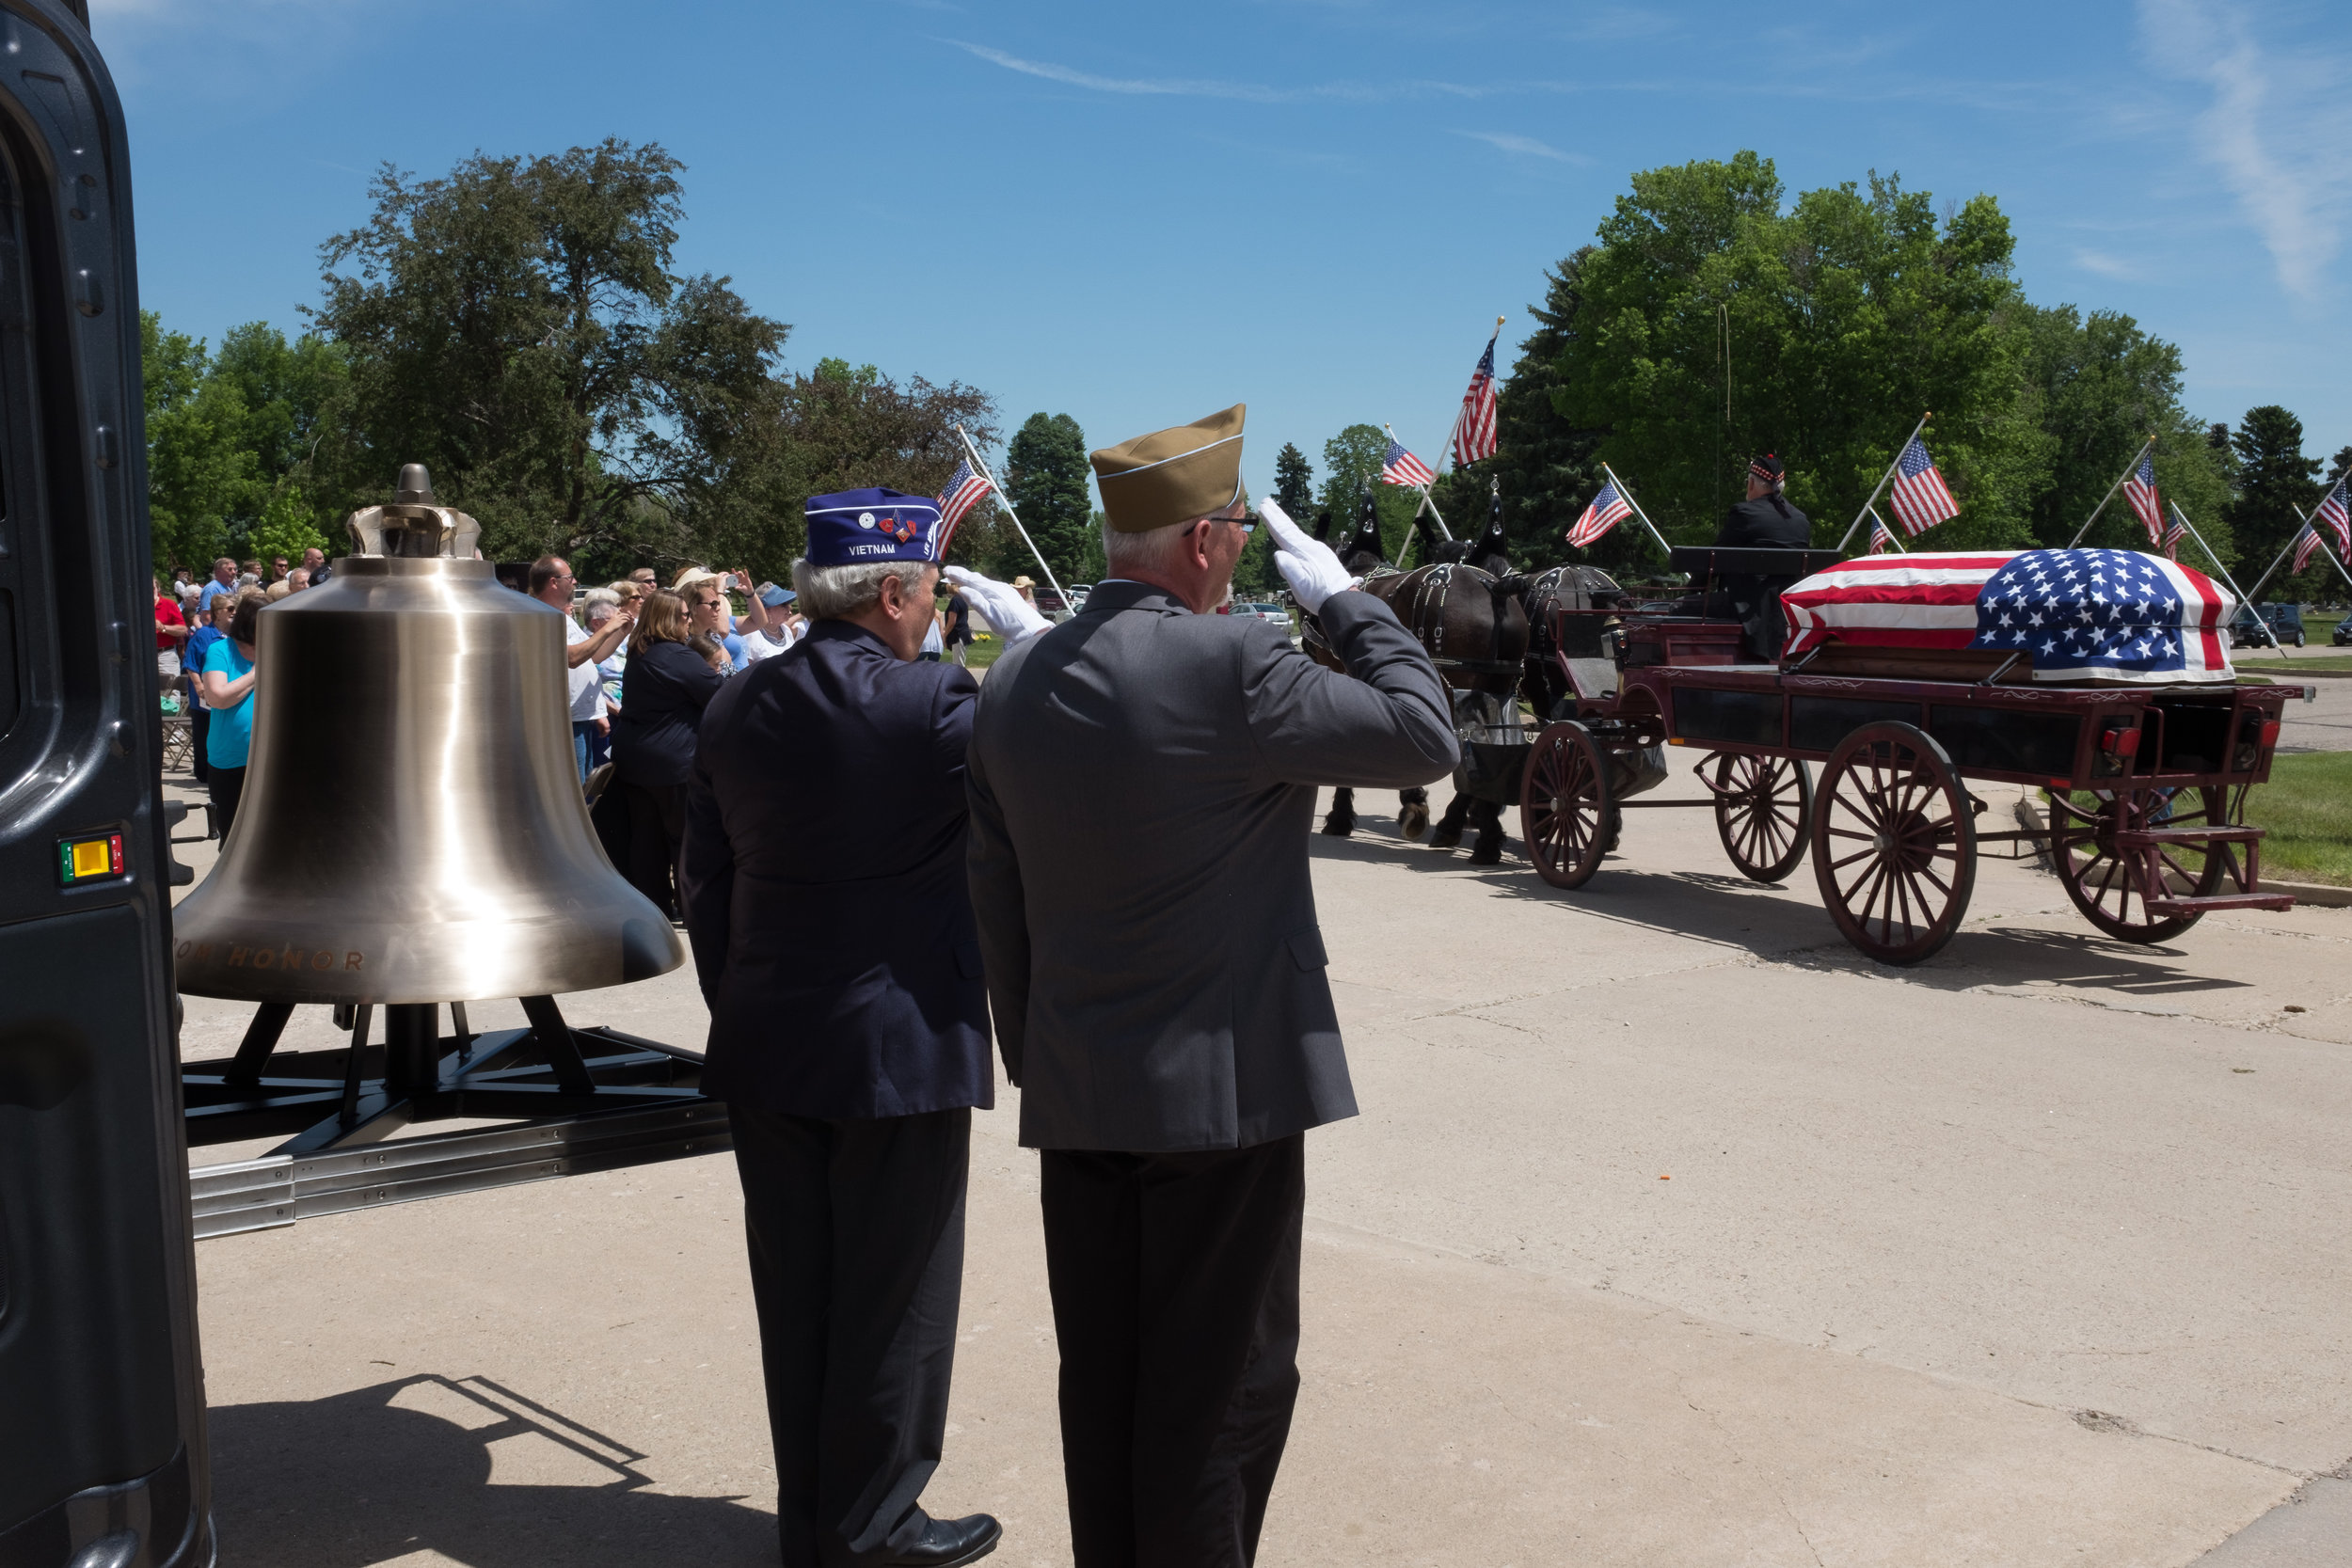 The Honor Bell and Bell Guard, saluting a flag-draped casket on a caisson at Olinger Crown Hill Cemetery during their Memorial Day remembrance in 2016.